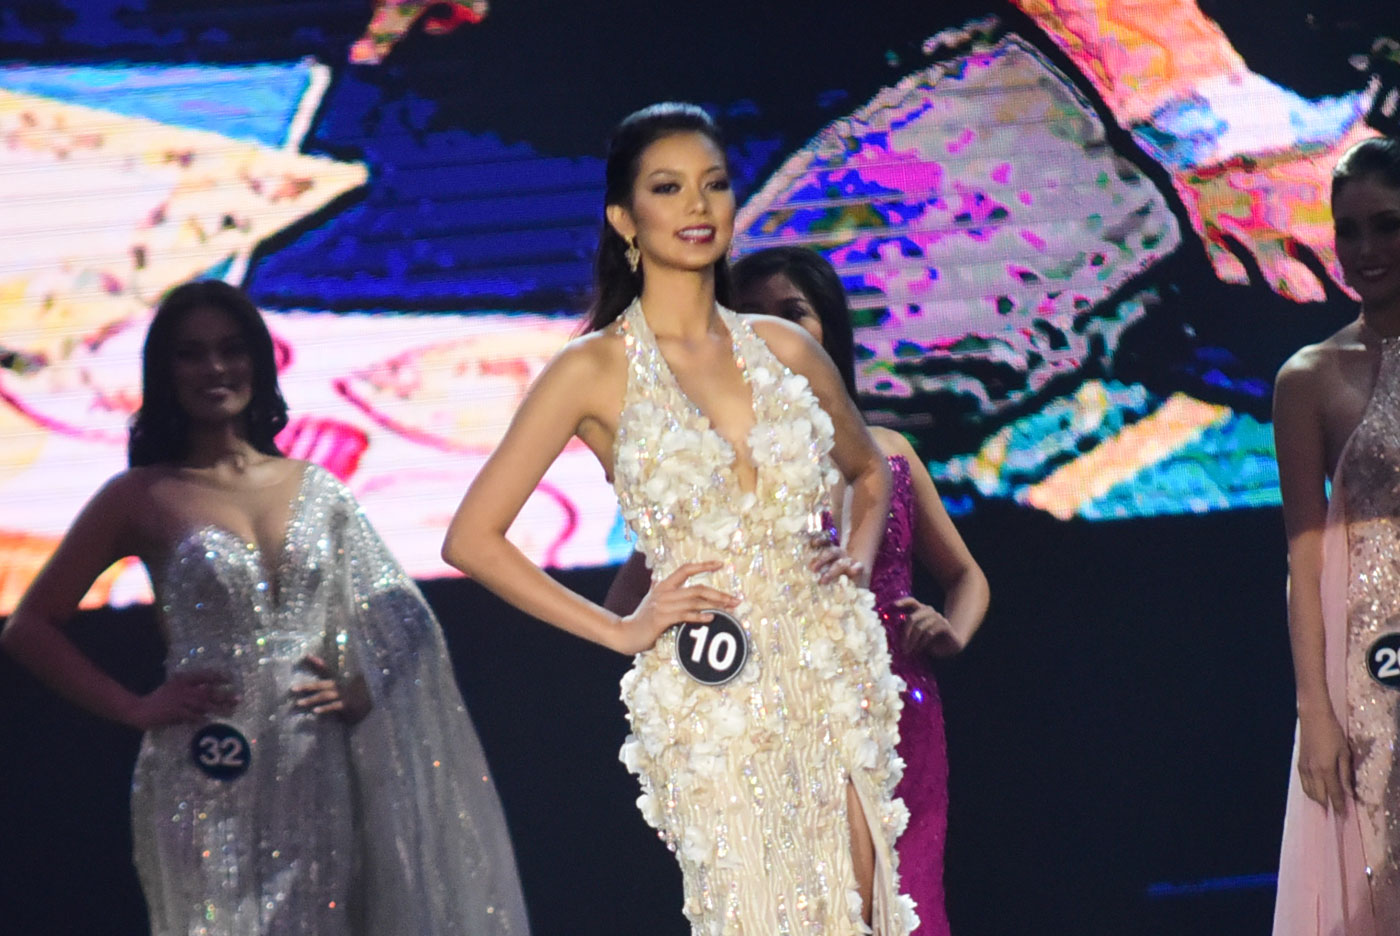 IMPROVEMENT. Jehza during the evening gown competition in 2017.